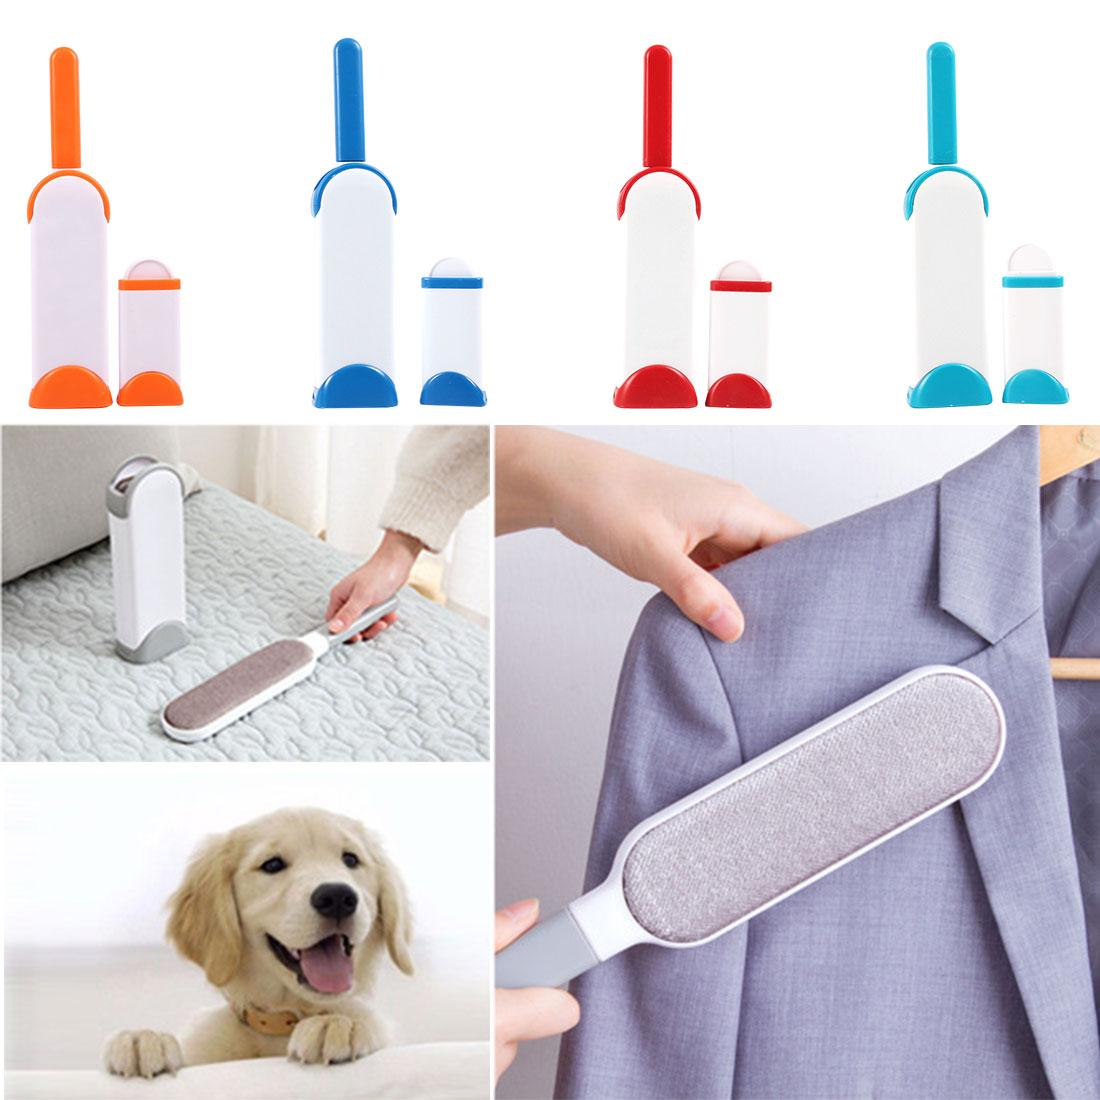 3Pcs/set Pet Hair Remover Static Brush Magic Fur Cleaning Brushes Reusable Device Dust Brush Electrostatic Dust Cleaners